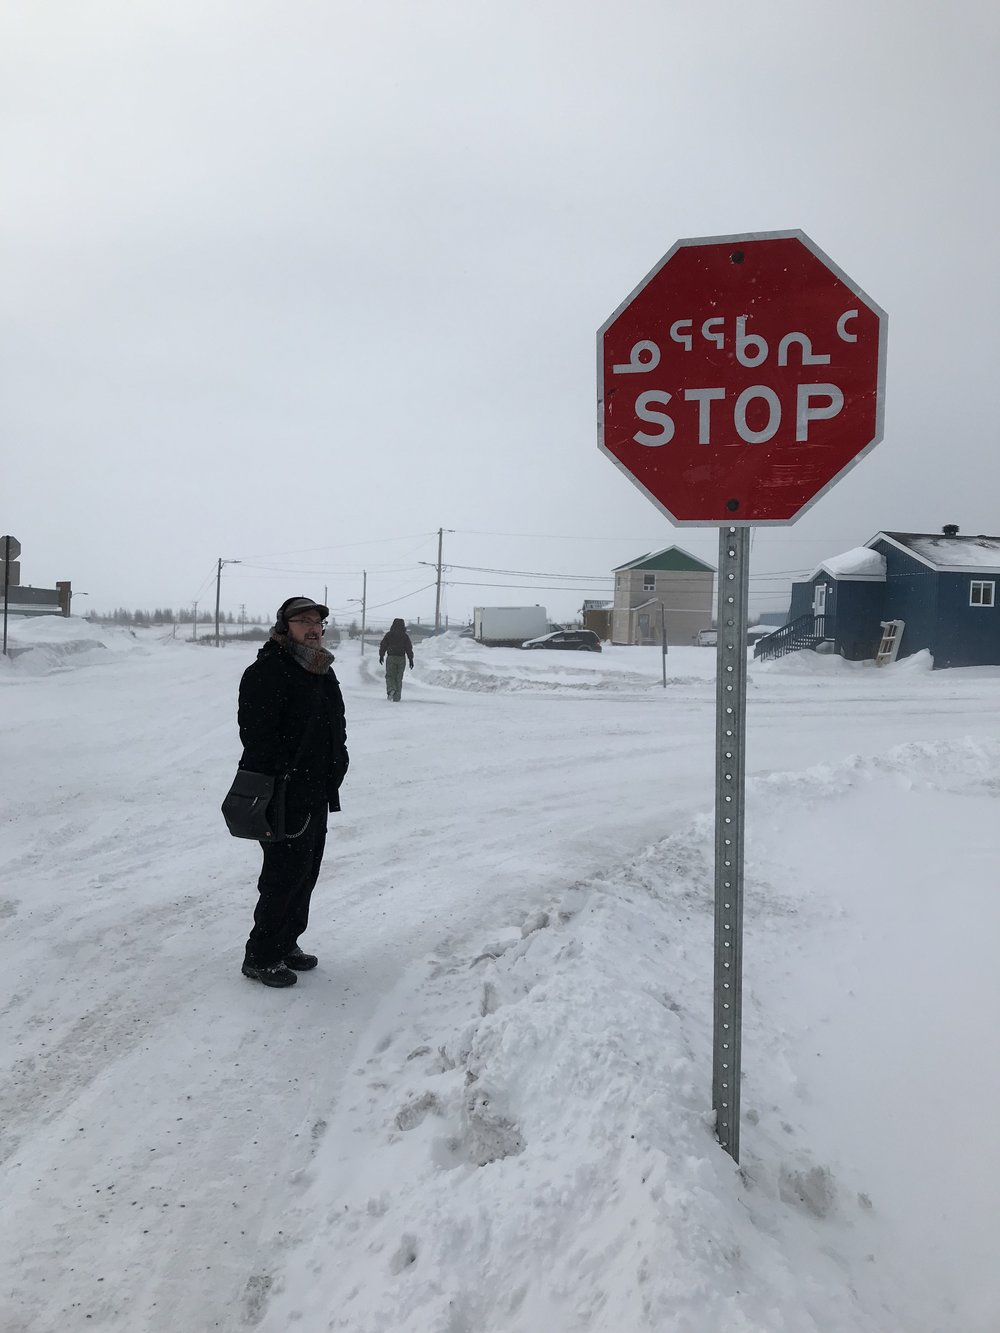 Stop Sign with Inuktitut!